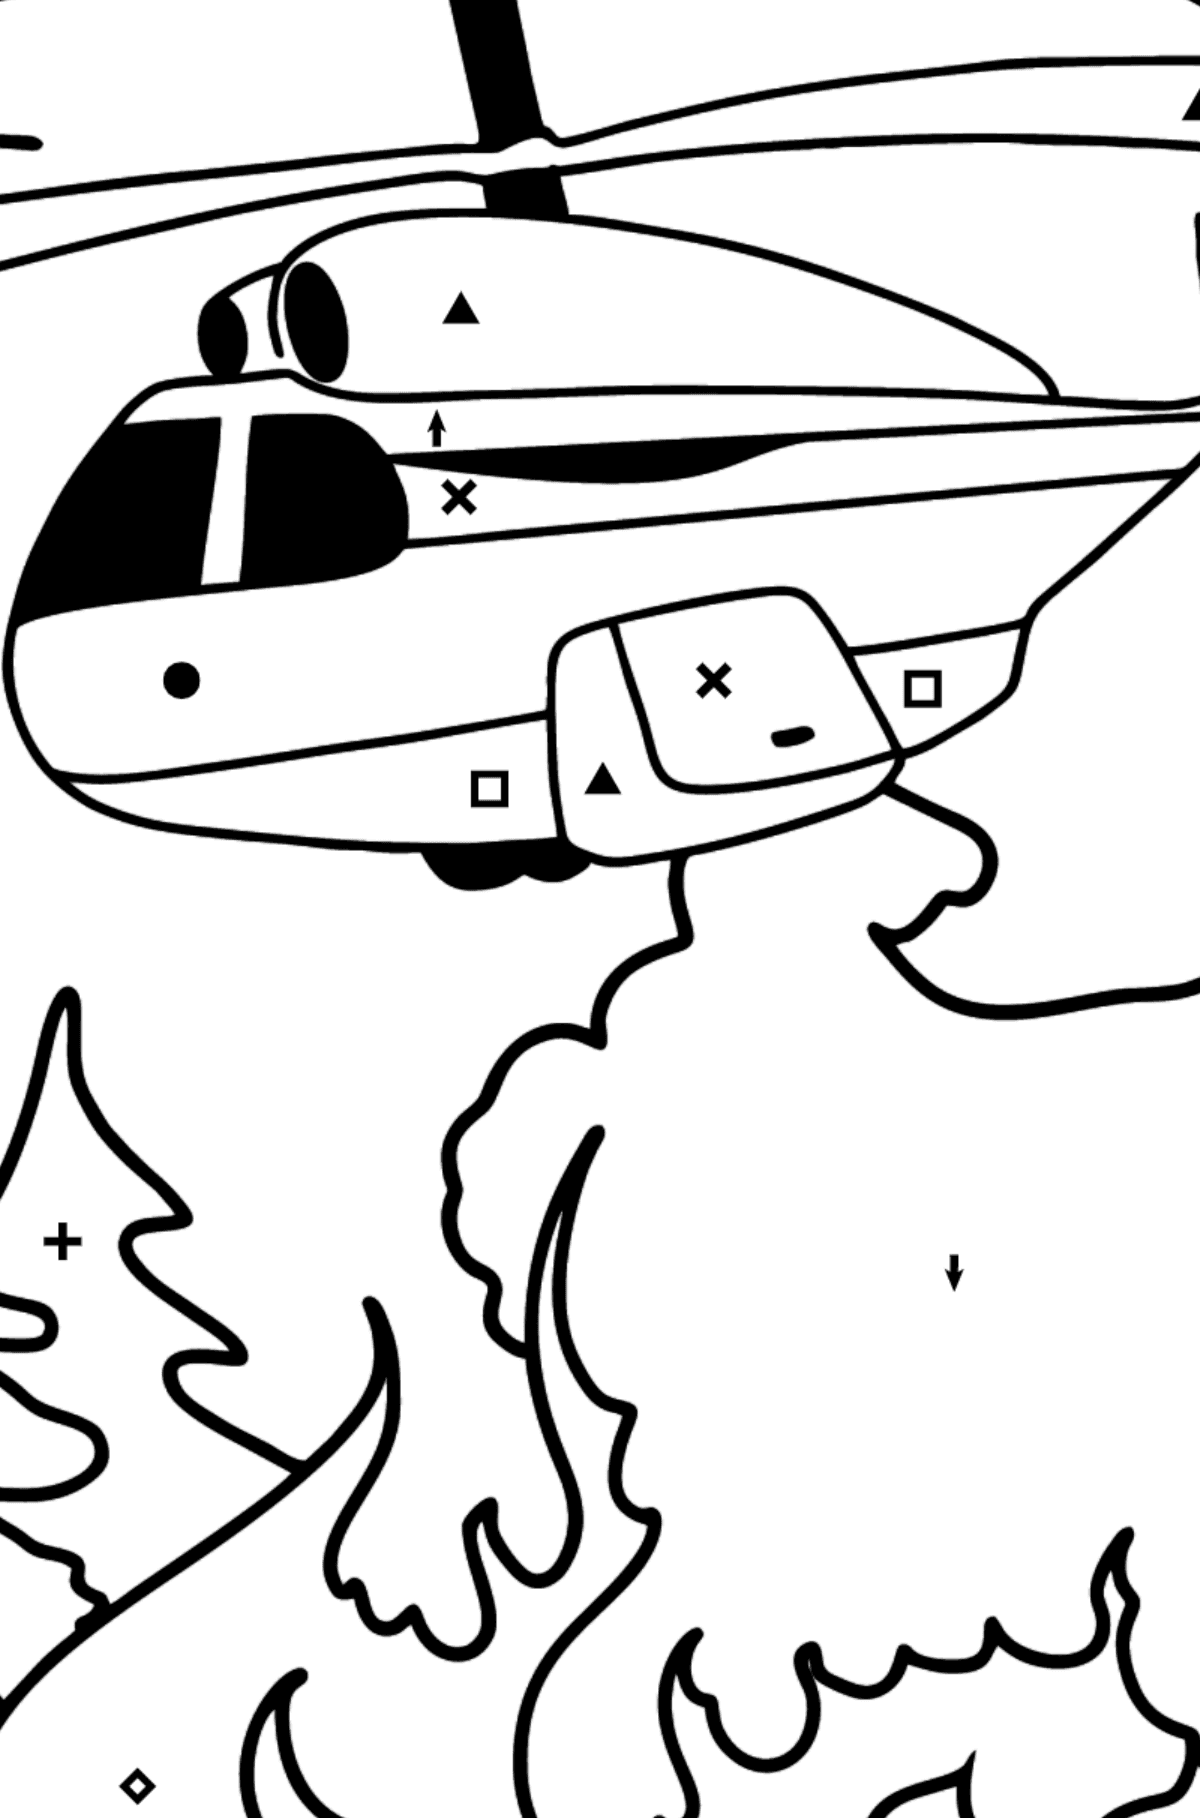 Helicopter Extinguishing Fire coloring page - Coloring by Symbols for Kids